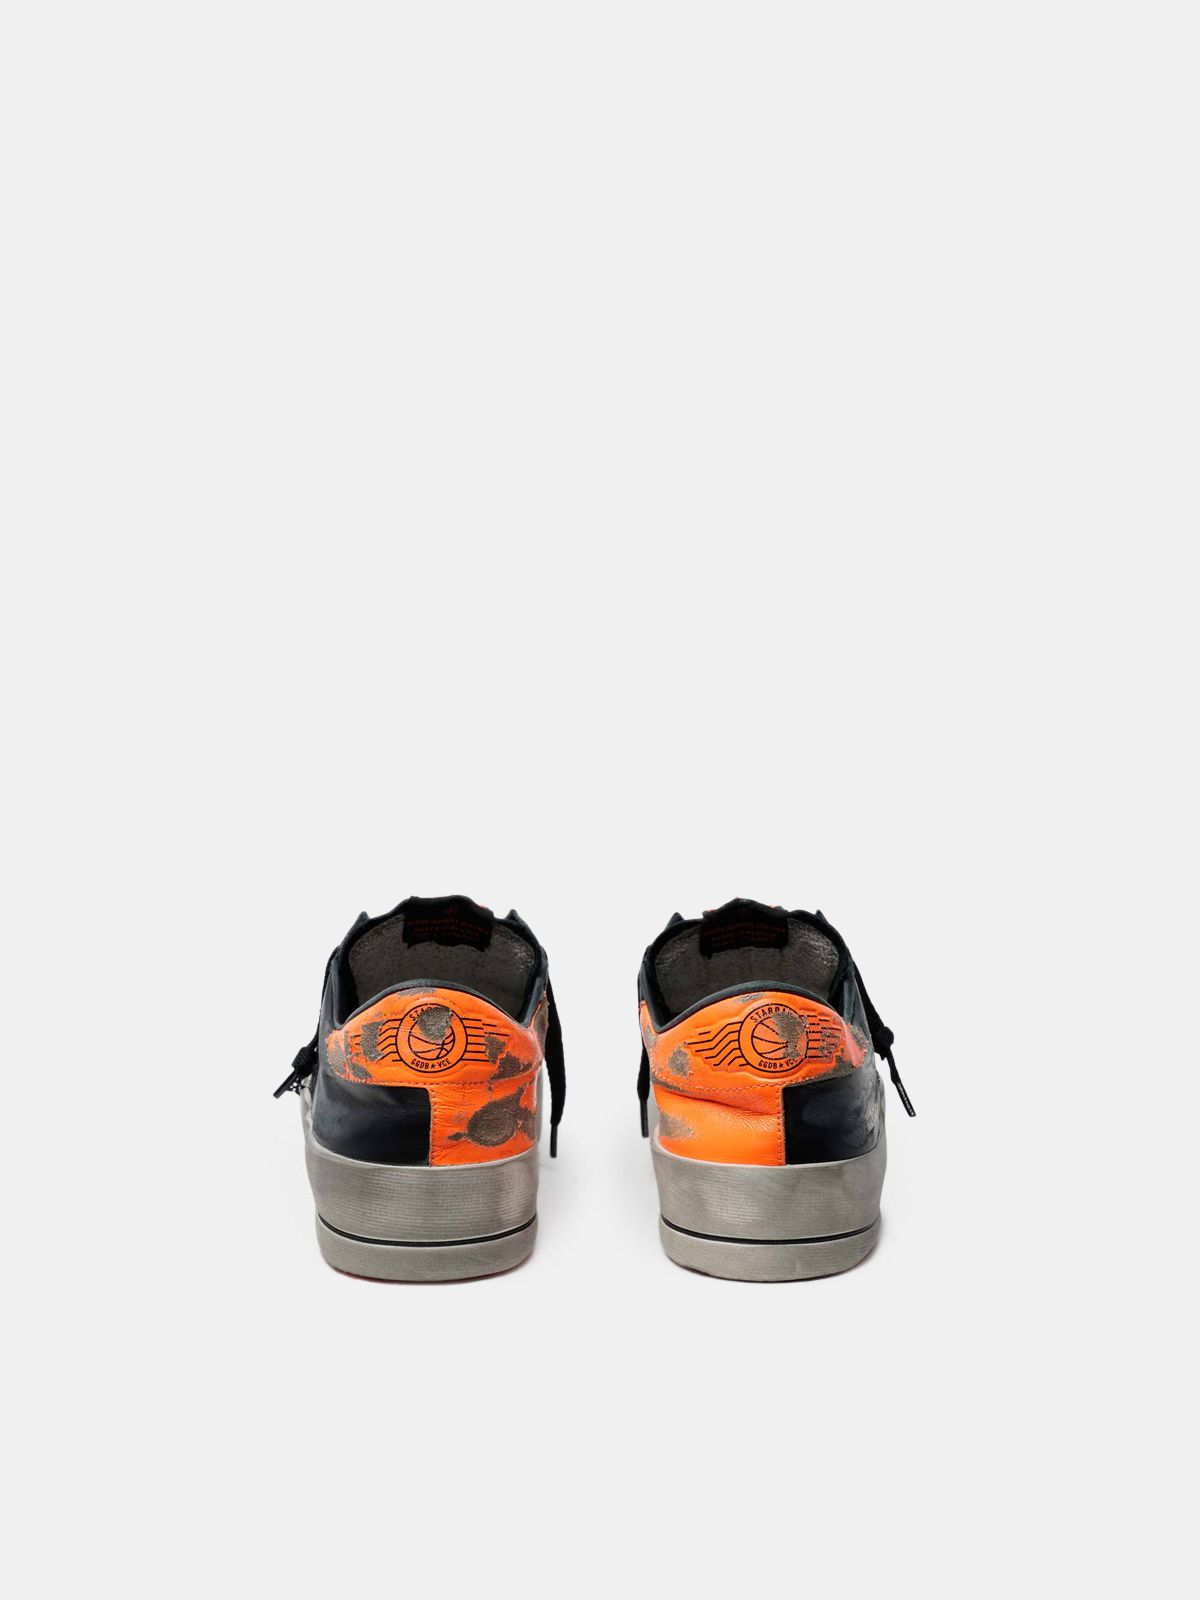 Golden Goose - Black and orange Stardan sneakers in